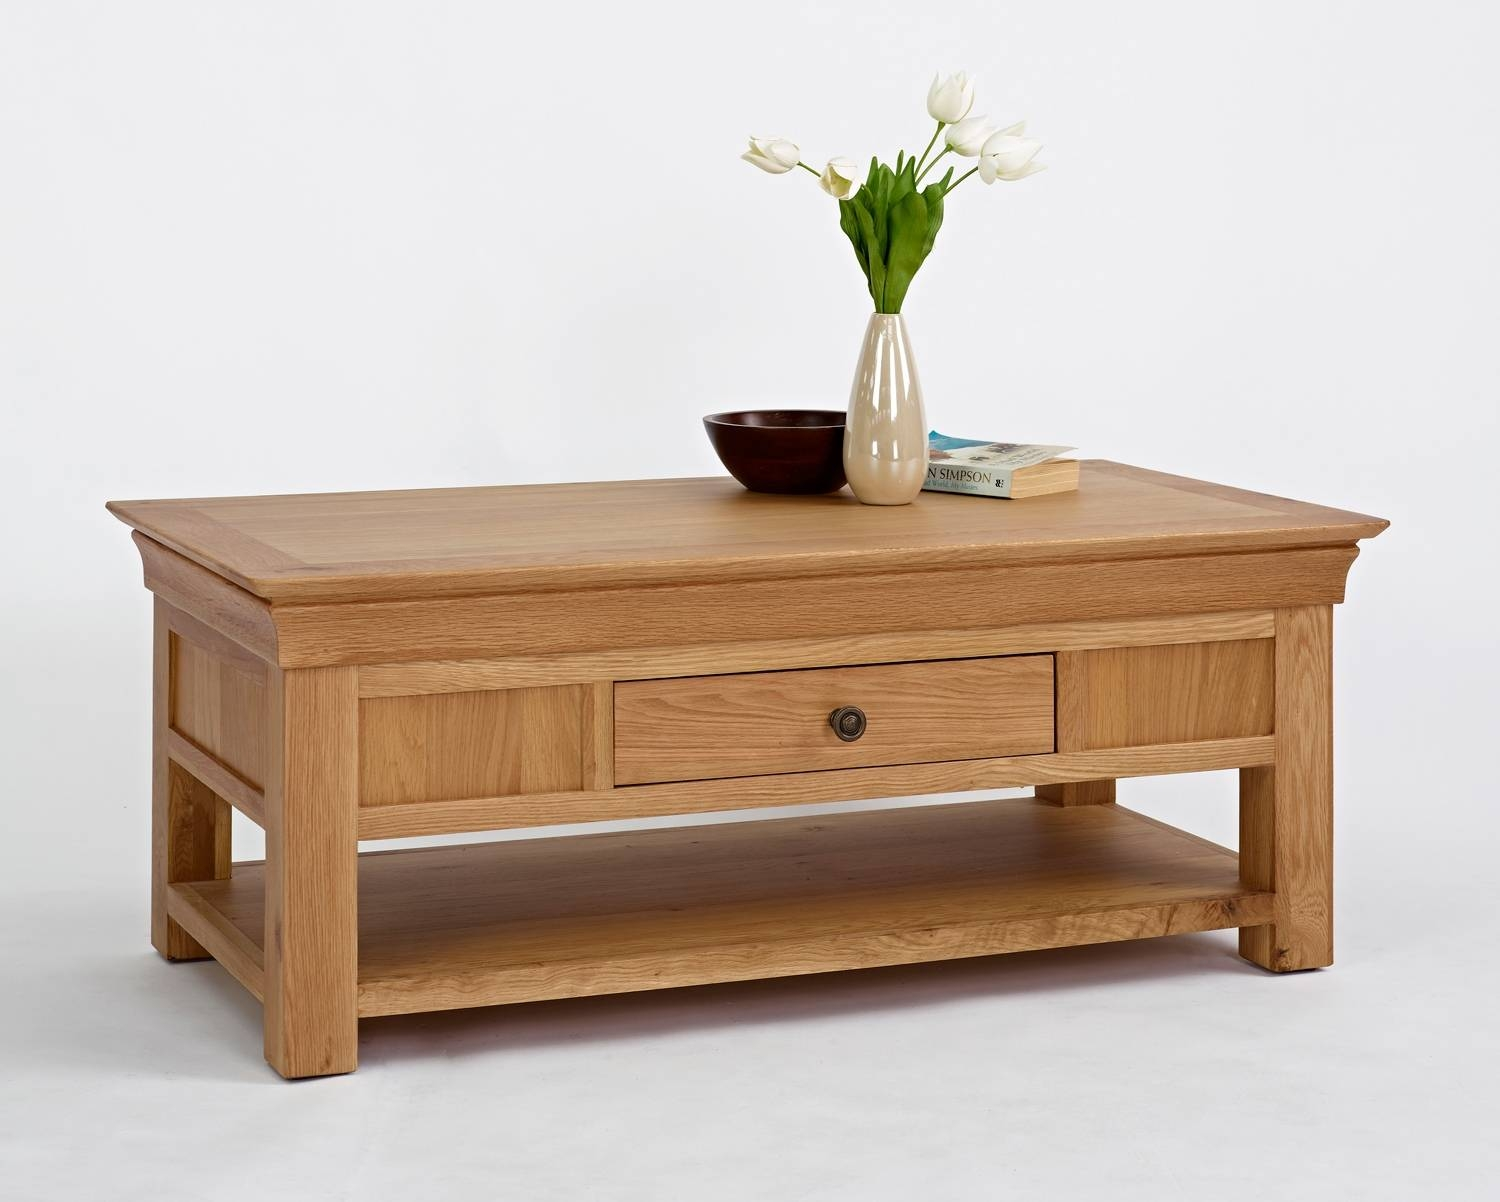 French Modern Oak Coffee Table With Drawer | Hampshire Furniture throughout Contemporary Oak Coffee Table (Image 12 of 15)